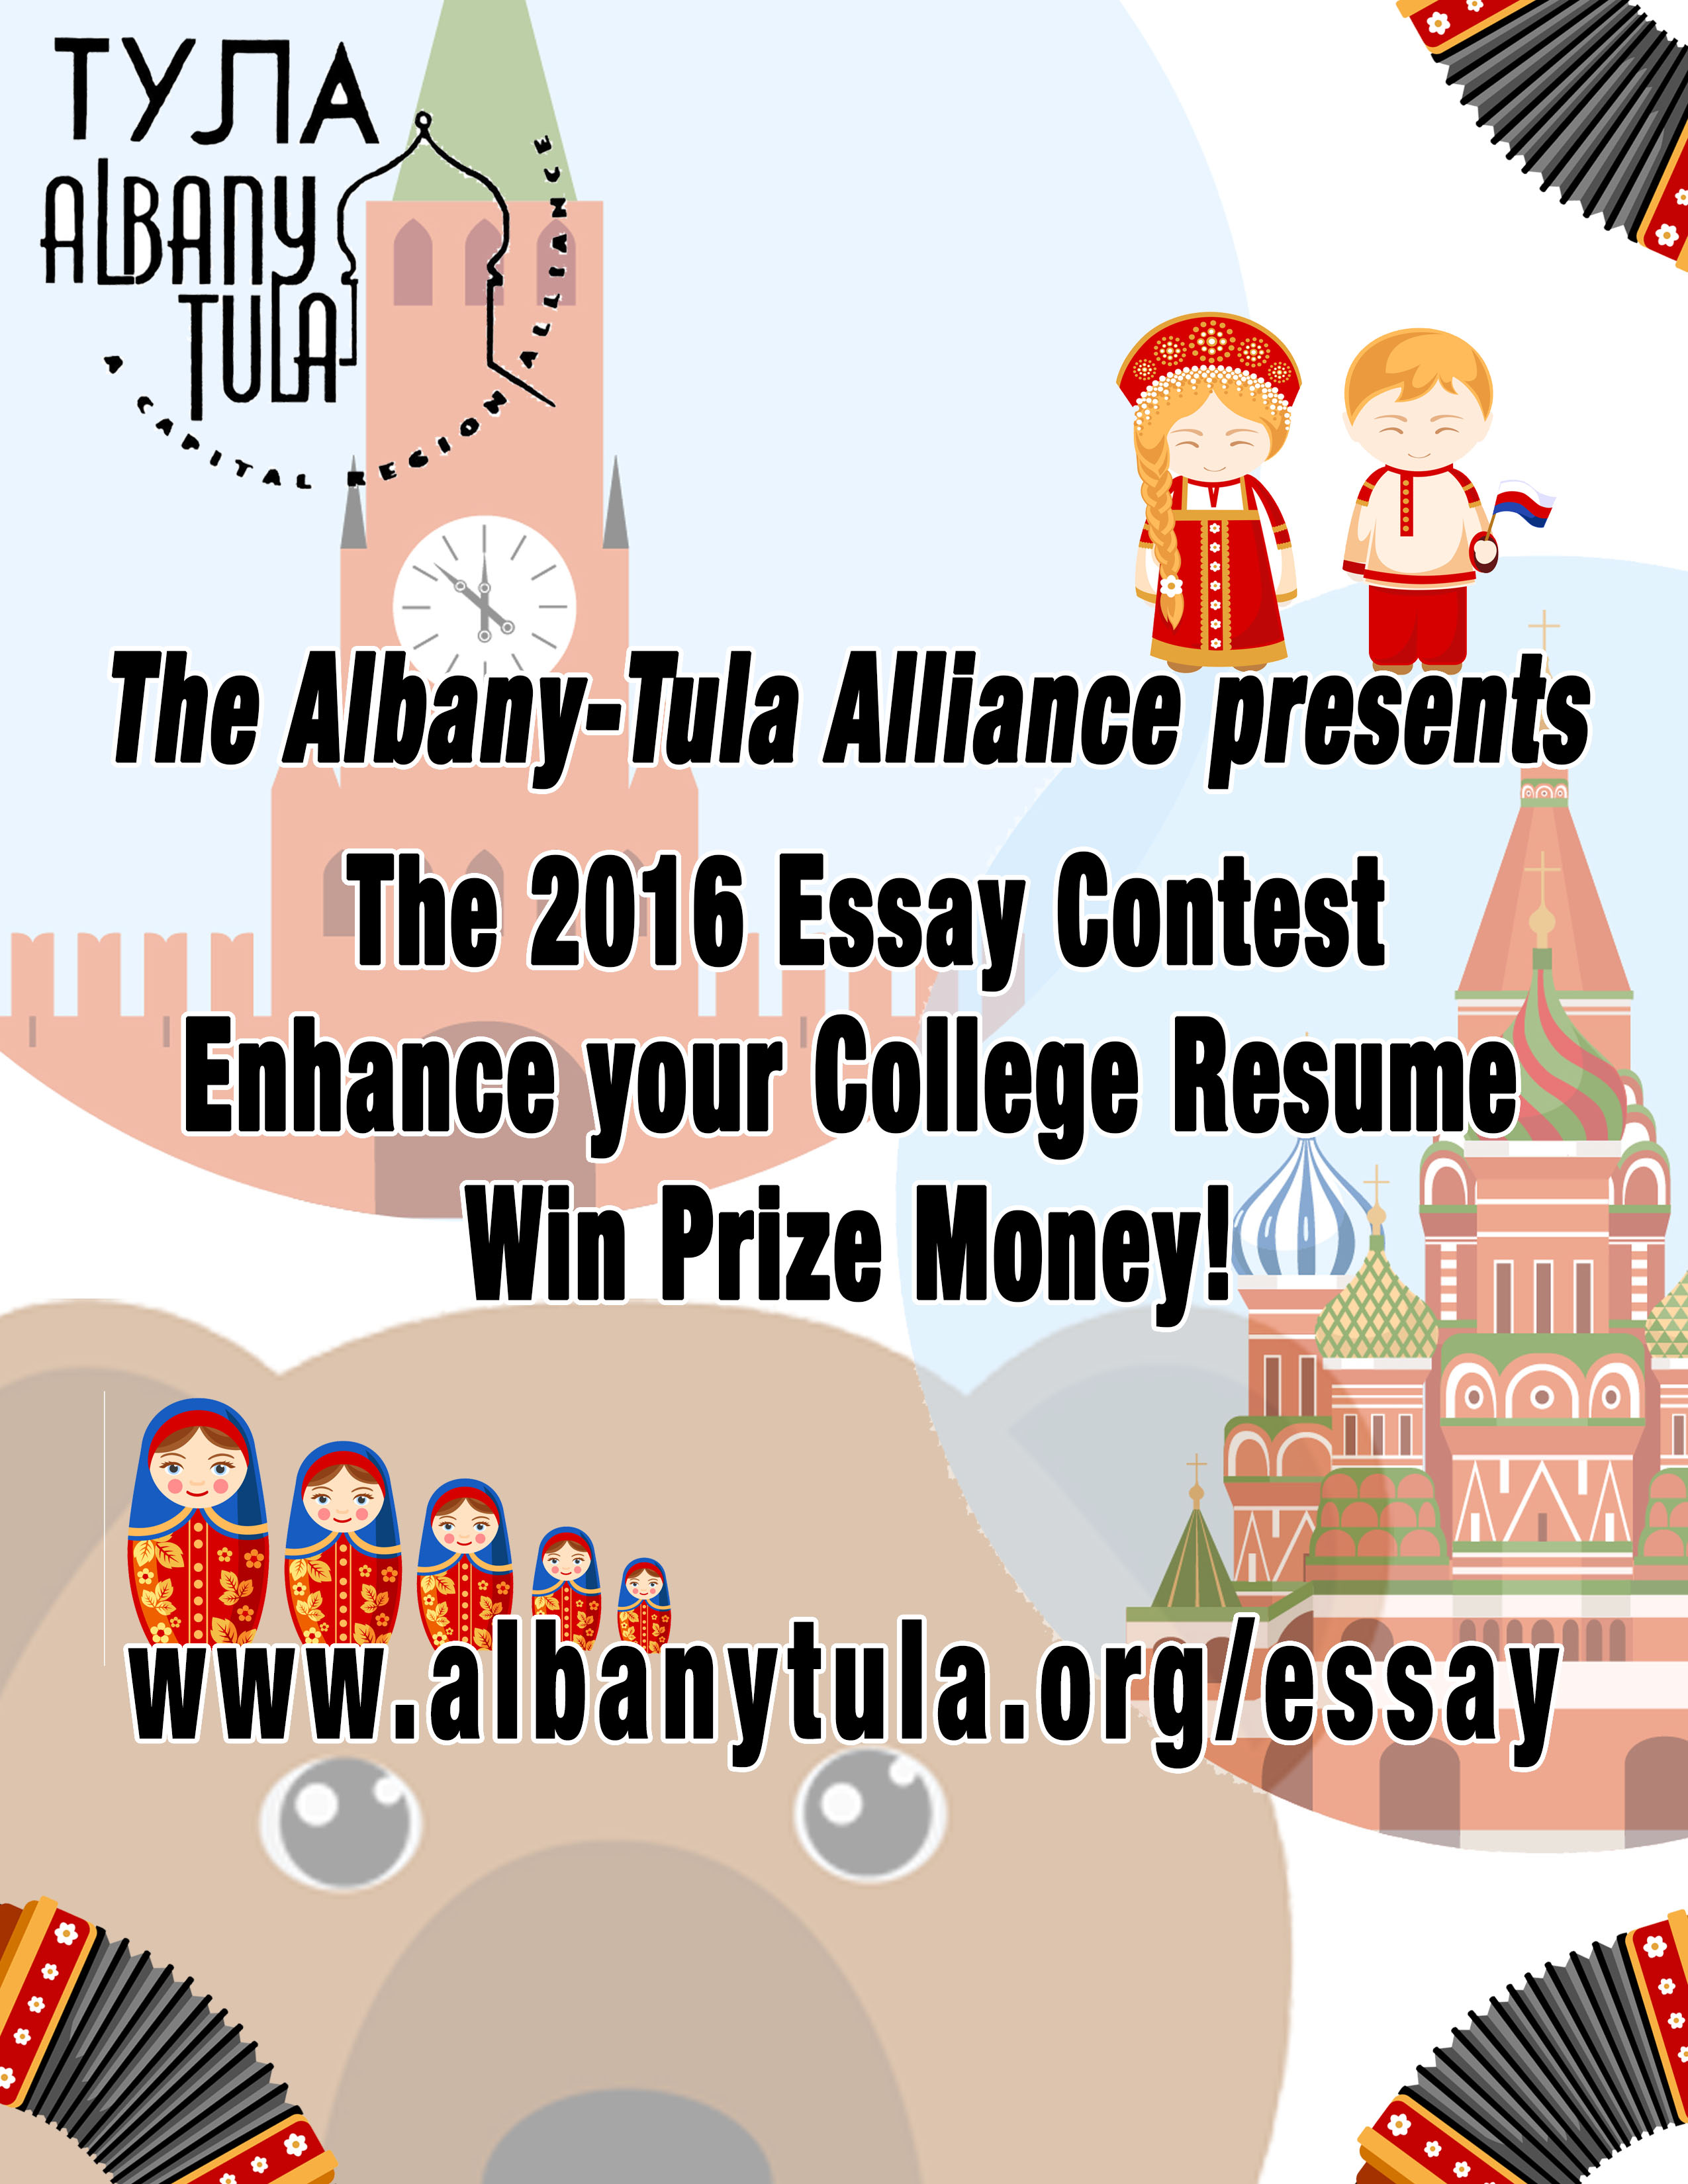 essay contest win money Share your ideas and win up to $100,000 you can help prevent home fire injuries & loss of life supported by top 5 reasons to join the movement 1.